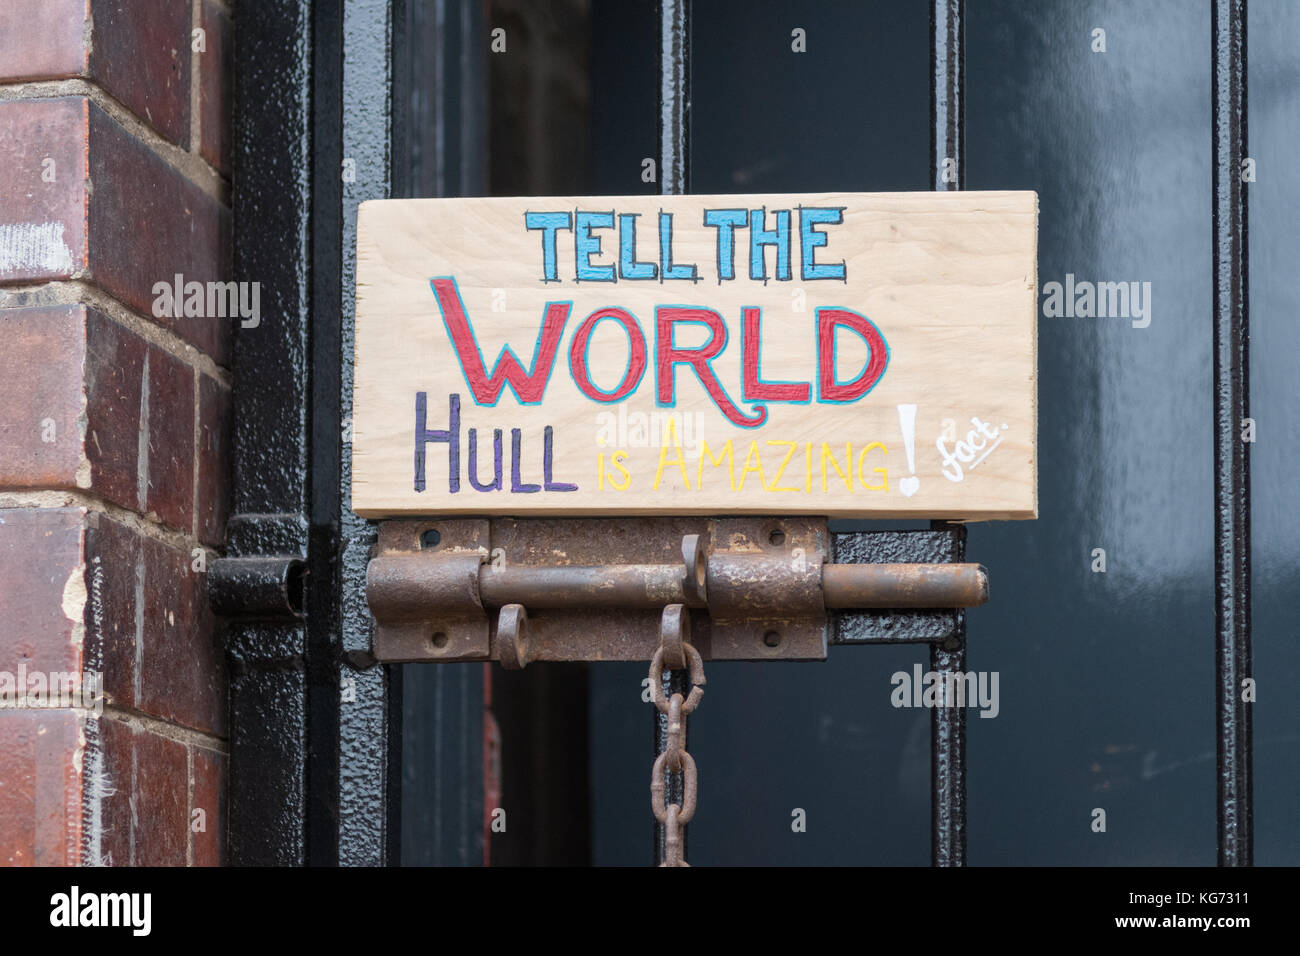 Hull UK City of Culture 2017 - Tell the World Hull is Amazing sign in Hull Fruit Market - Stock Image